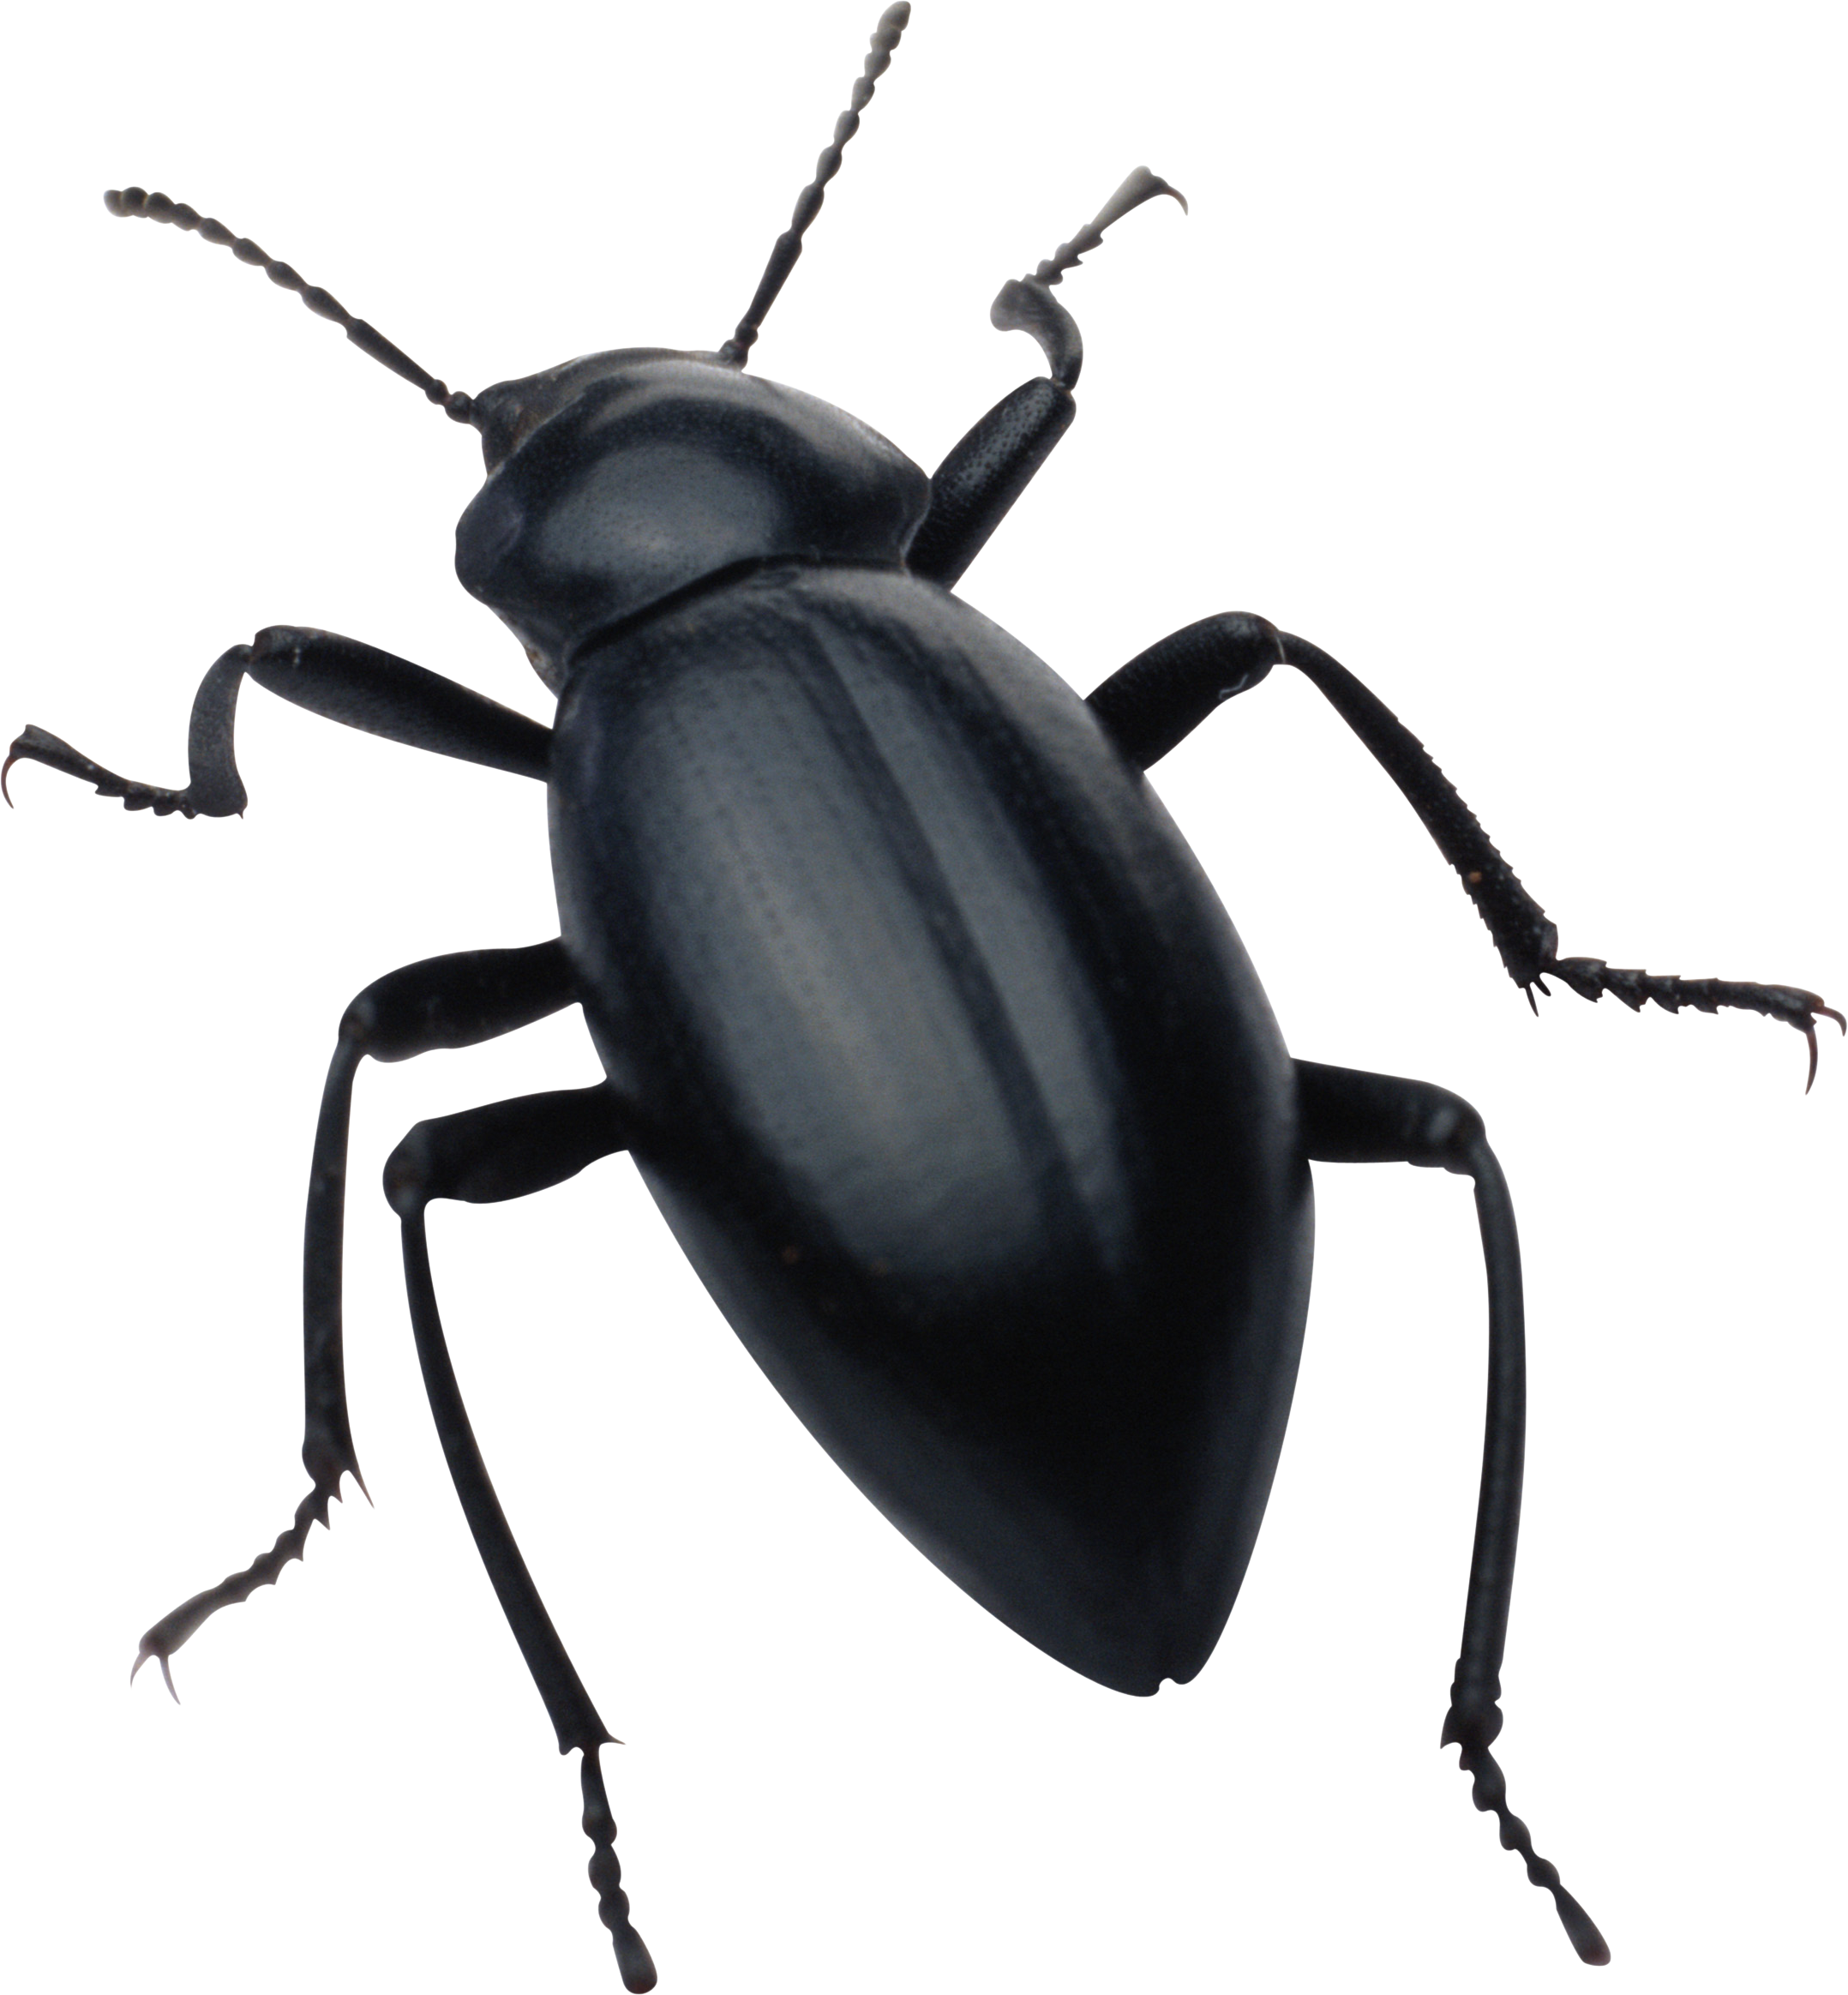 Bugs - Insects And Bugs, Transparent background PNG HD thumbnail